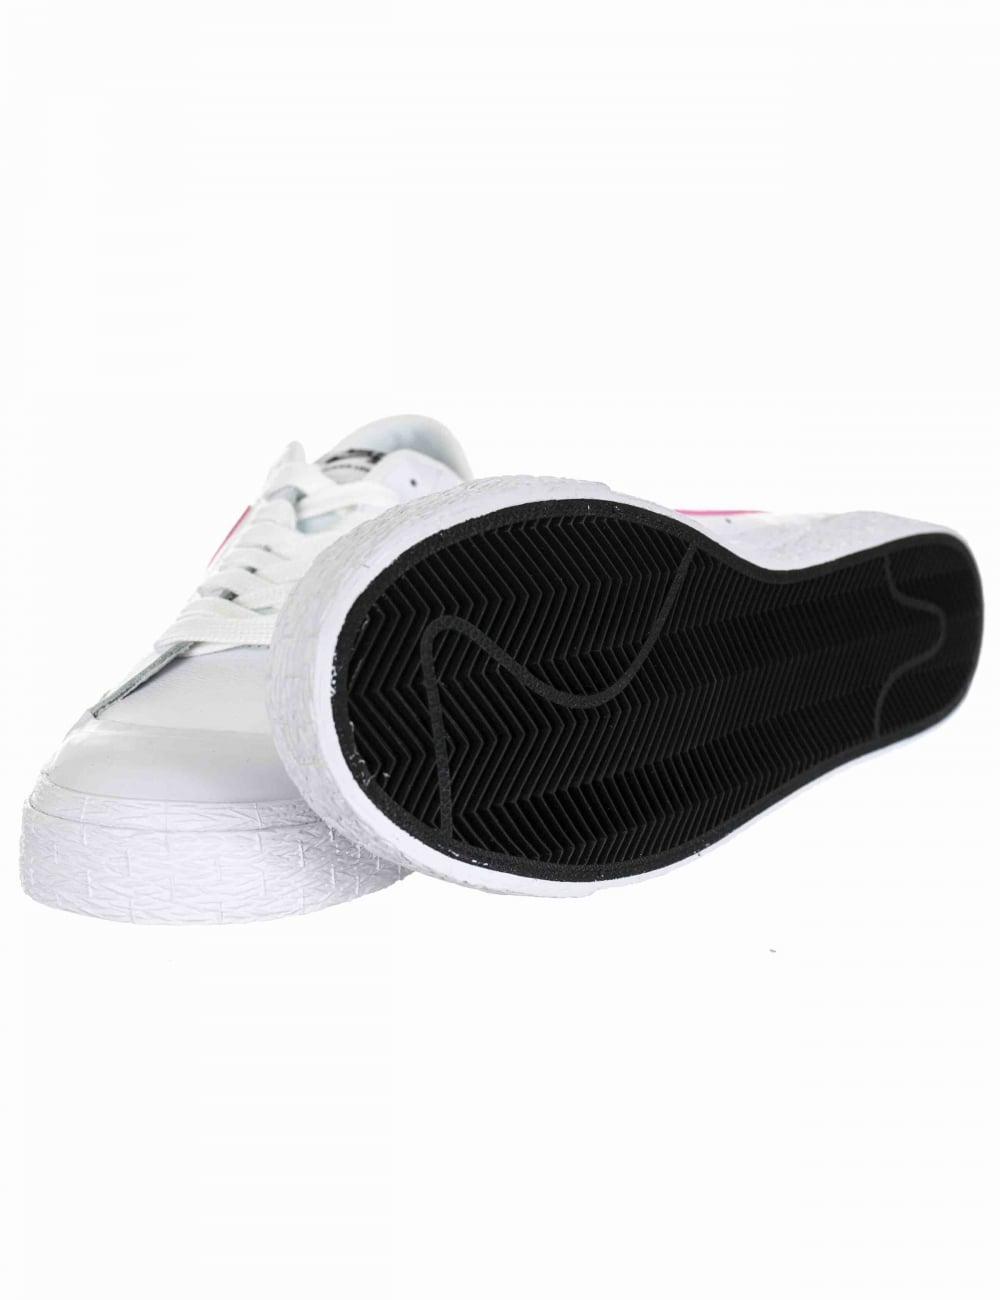 new style 8dd5c cc2a2 Blazer Zoom Low GT Shoes - White/Prism Pink